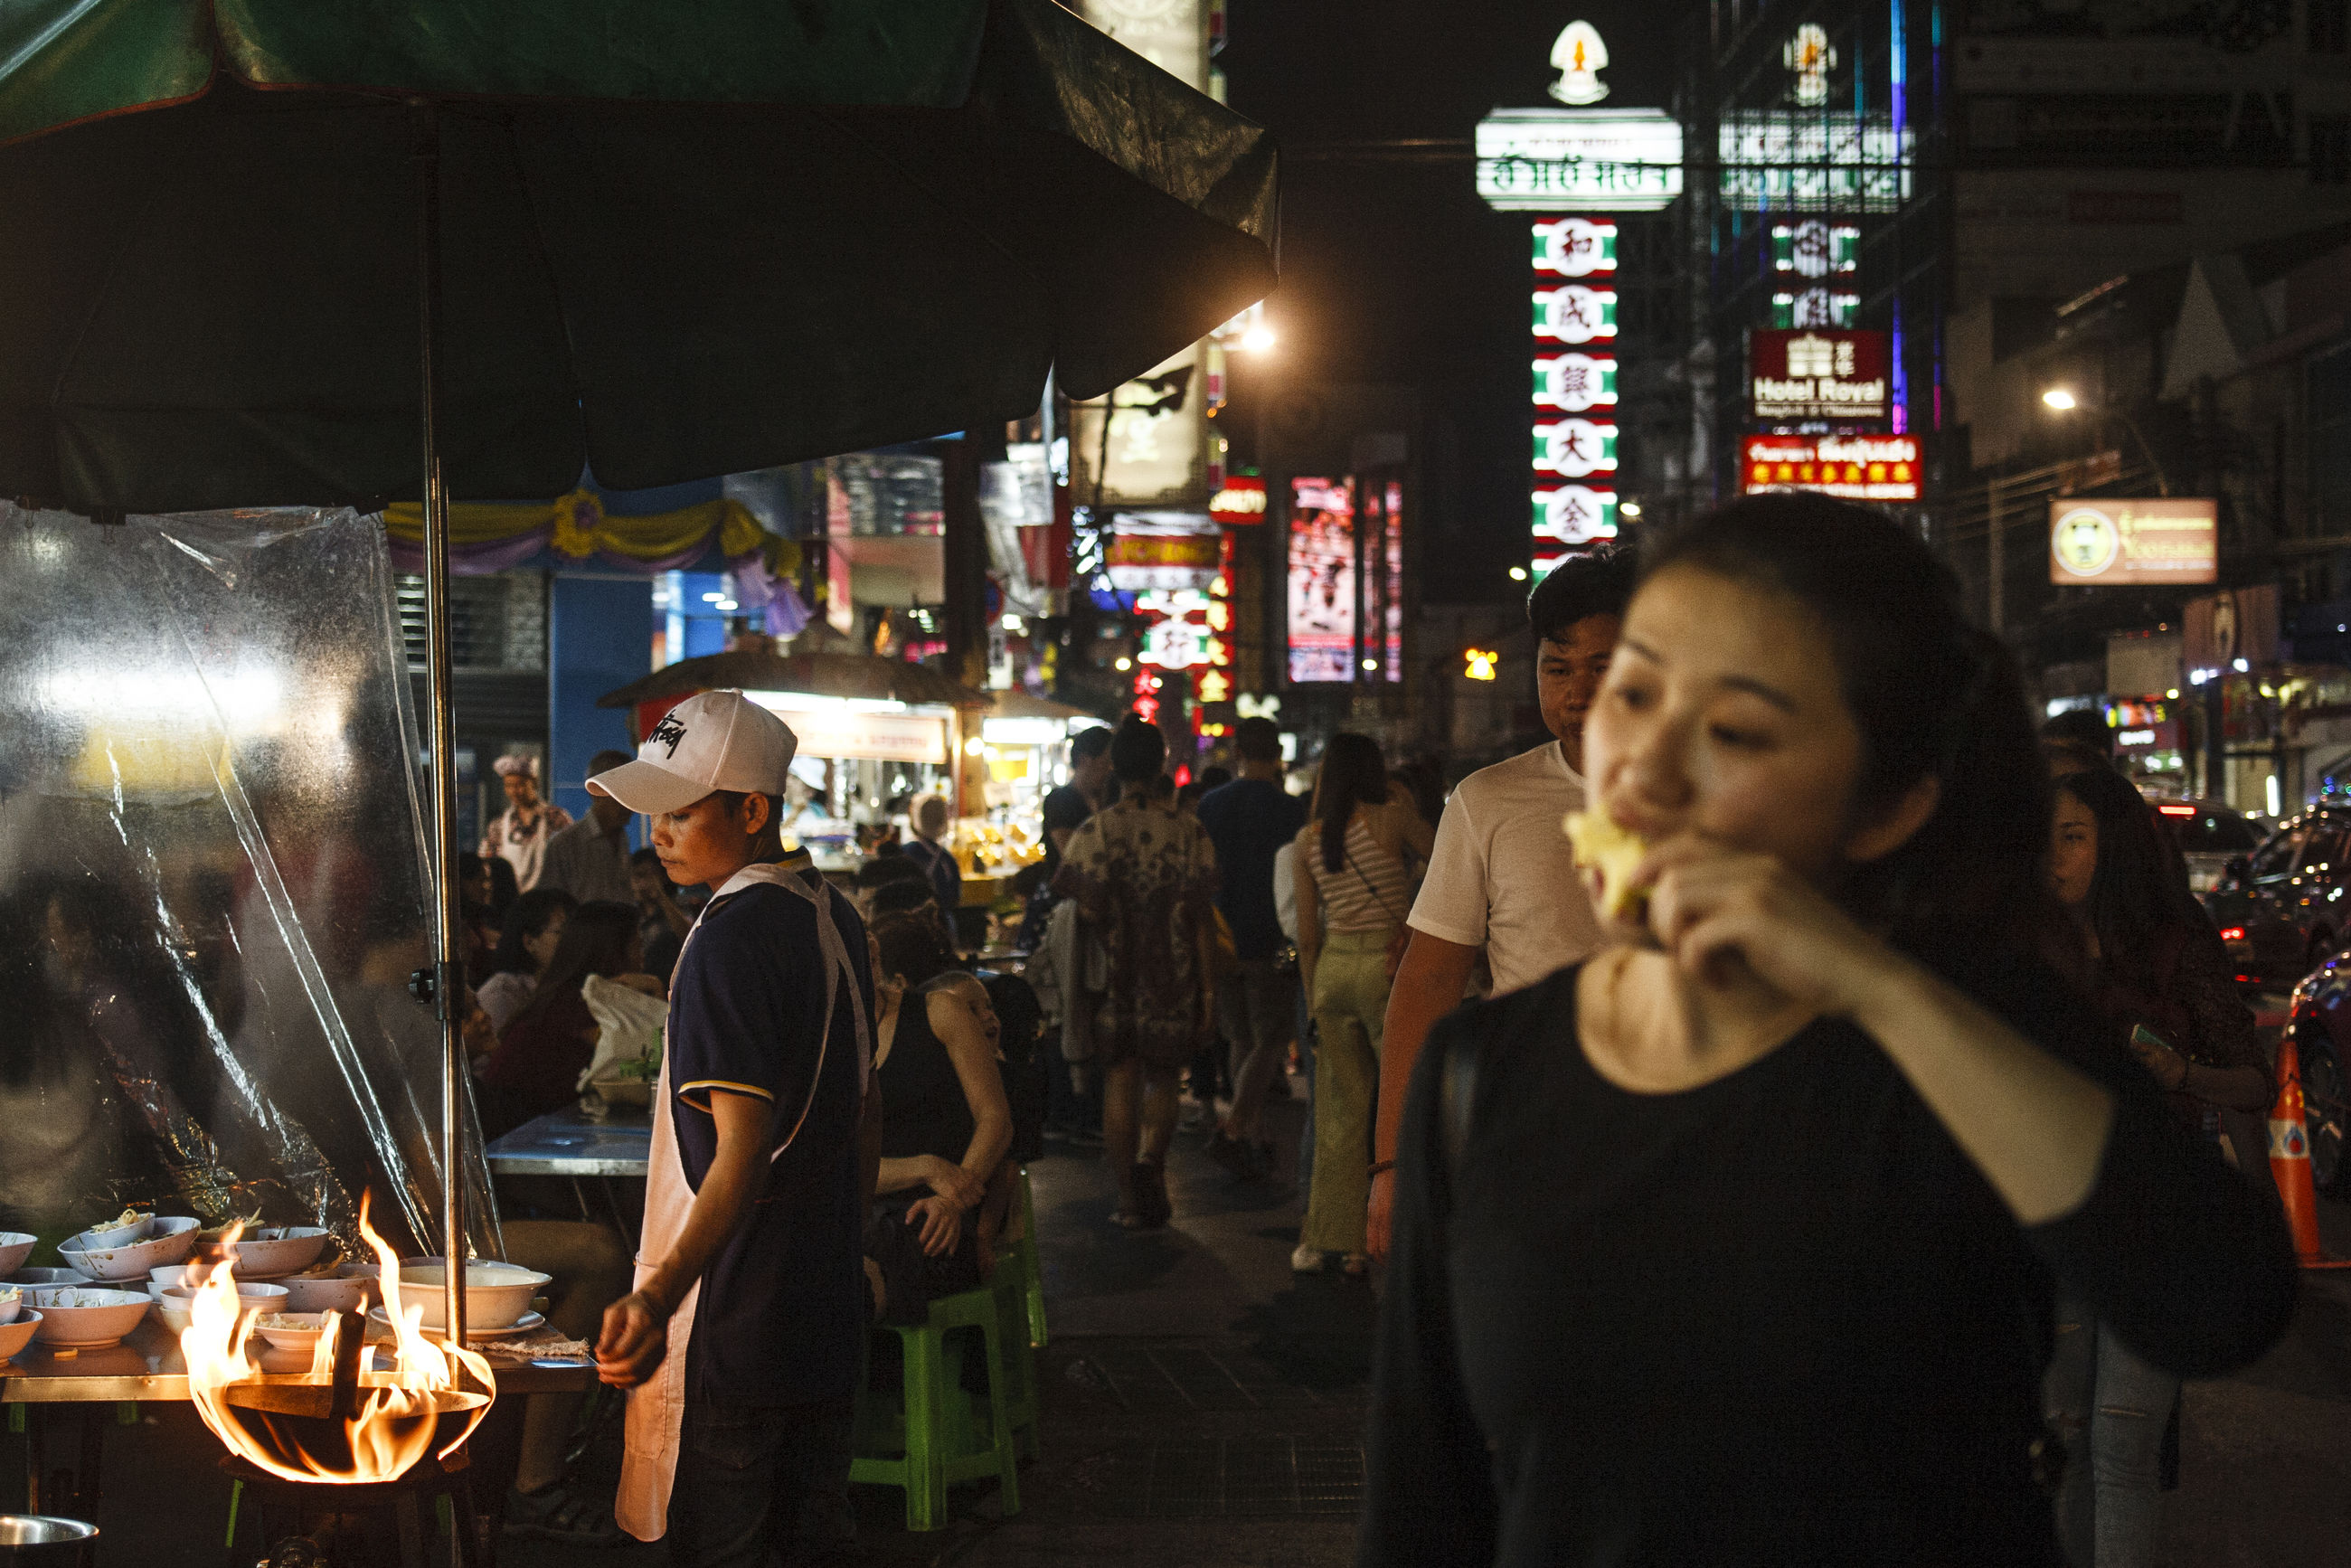 illuminated, night, real people, leisure activity, lifestyles, standing, incidental people, food and drink, city, architecture, people, group of people, young adult, communication, young women, built structure, women, front view, building exterior, holding, drinking